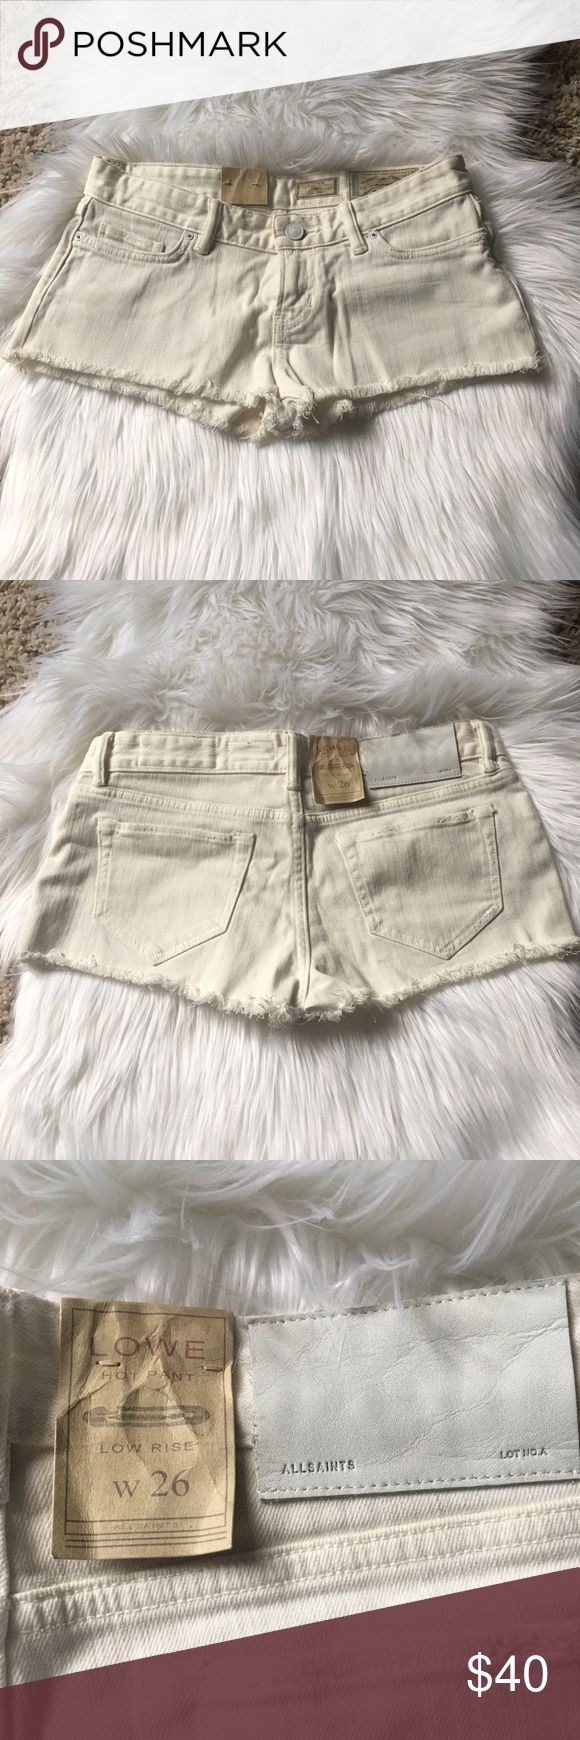 """AllSaints Cream Denim """"Hot Pants"""" Shorts NWT AllSaints Cream Denim """"Hot Pants"""" Shorts NWT - """"cheeky"""" short shorts perfect for the summer, beach, and pool. Size 2, no stretch, sits below waist. All Saints Shorts Jean Shorts"""